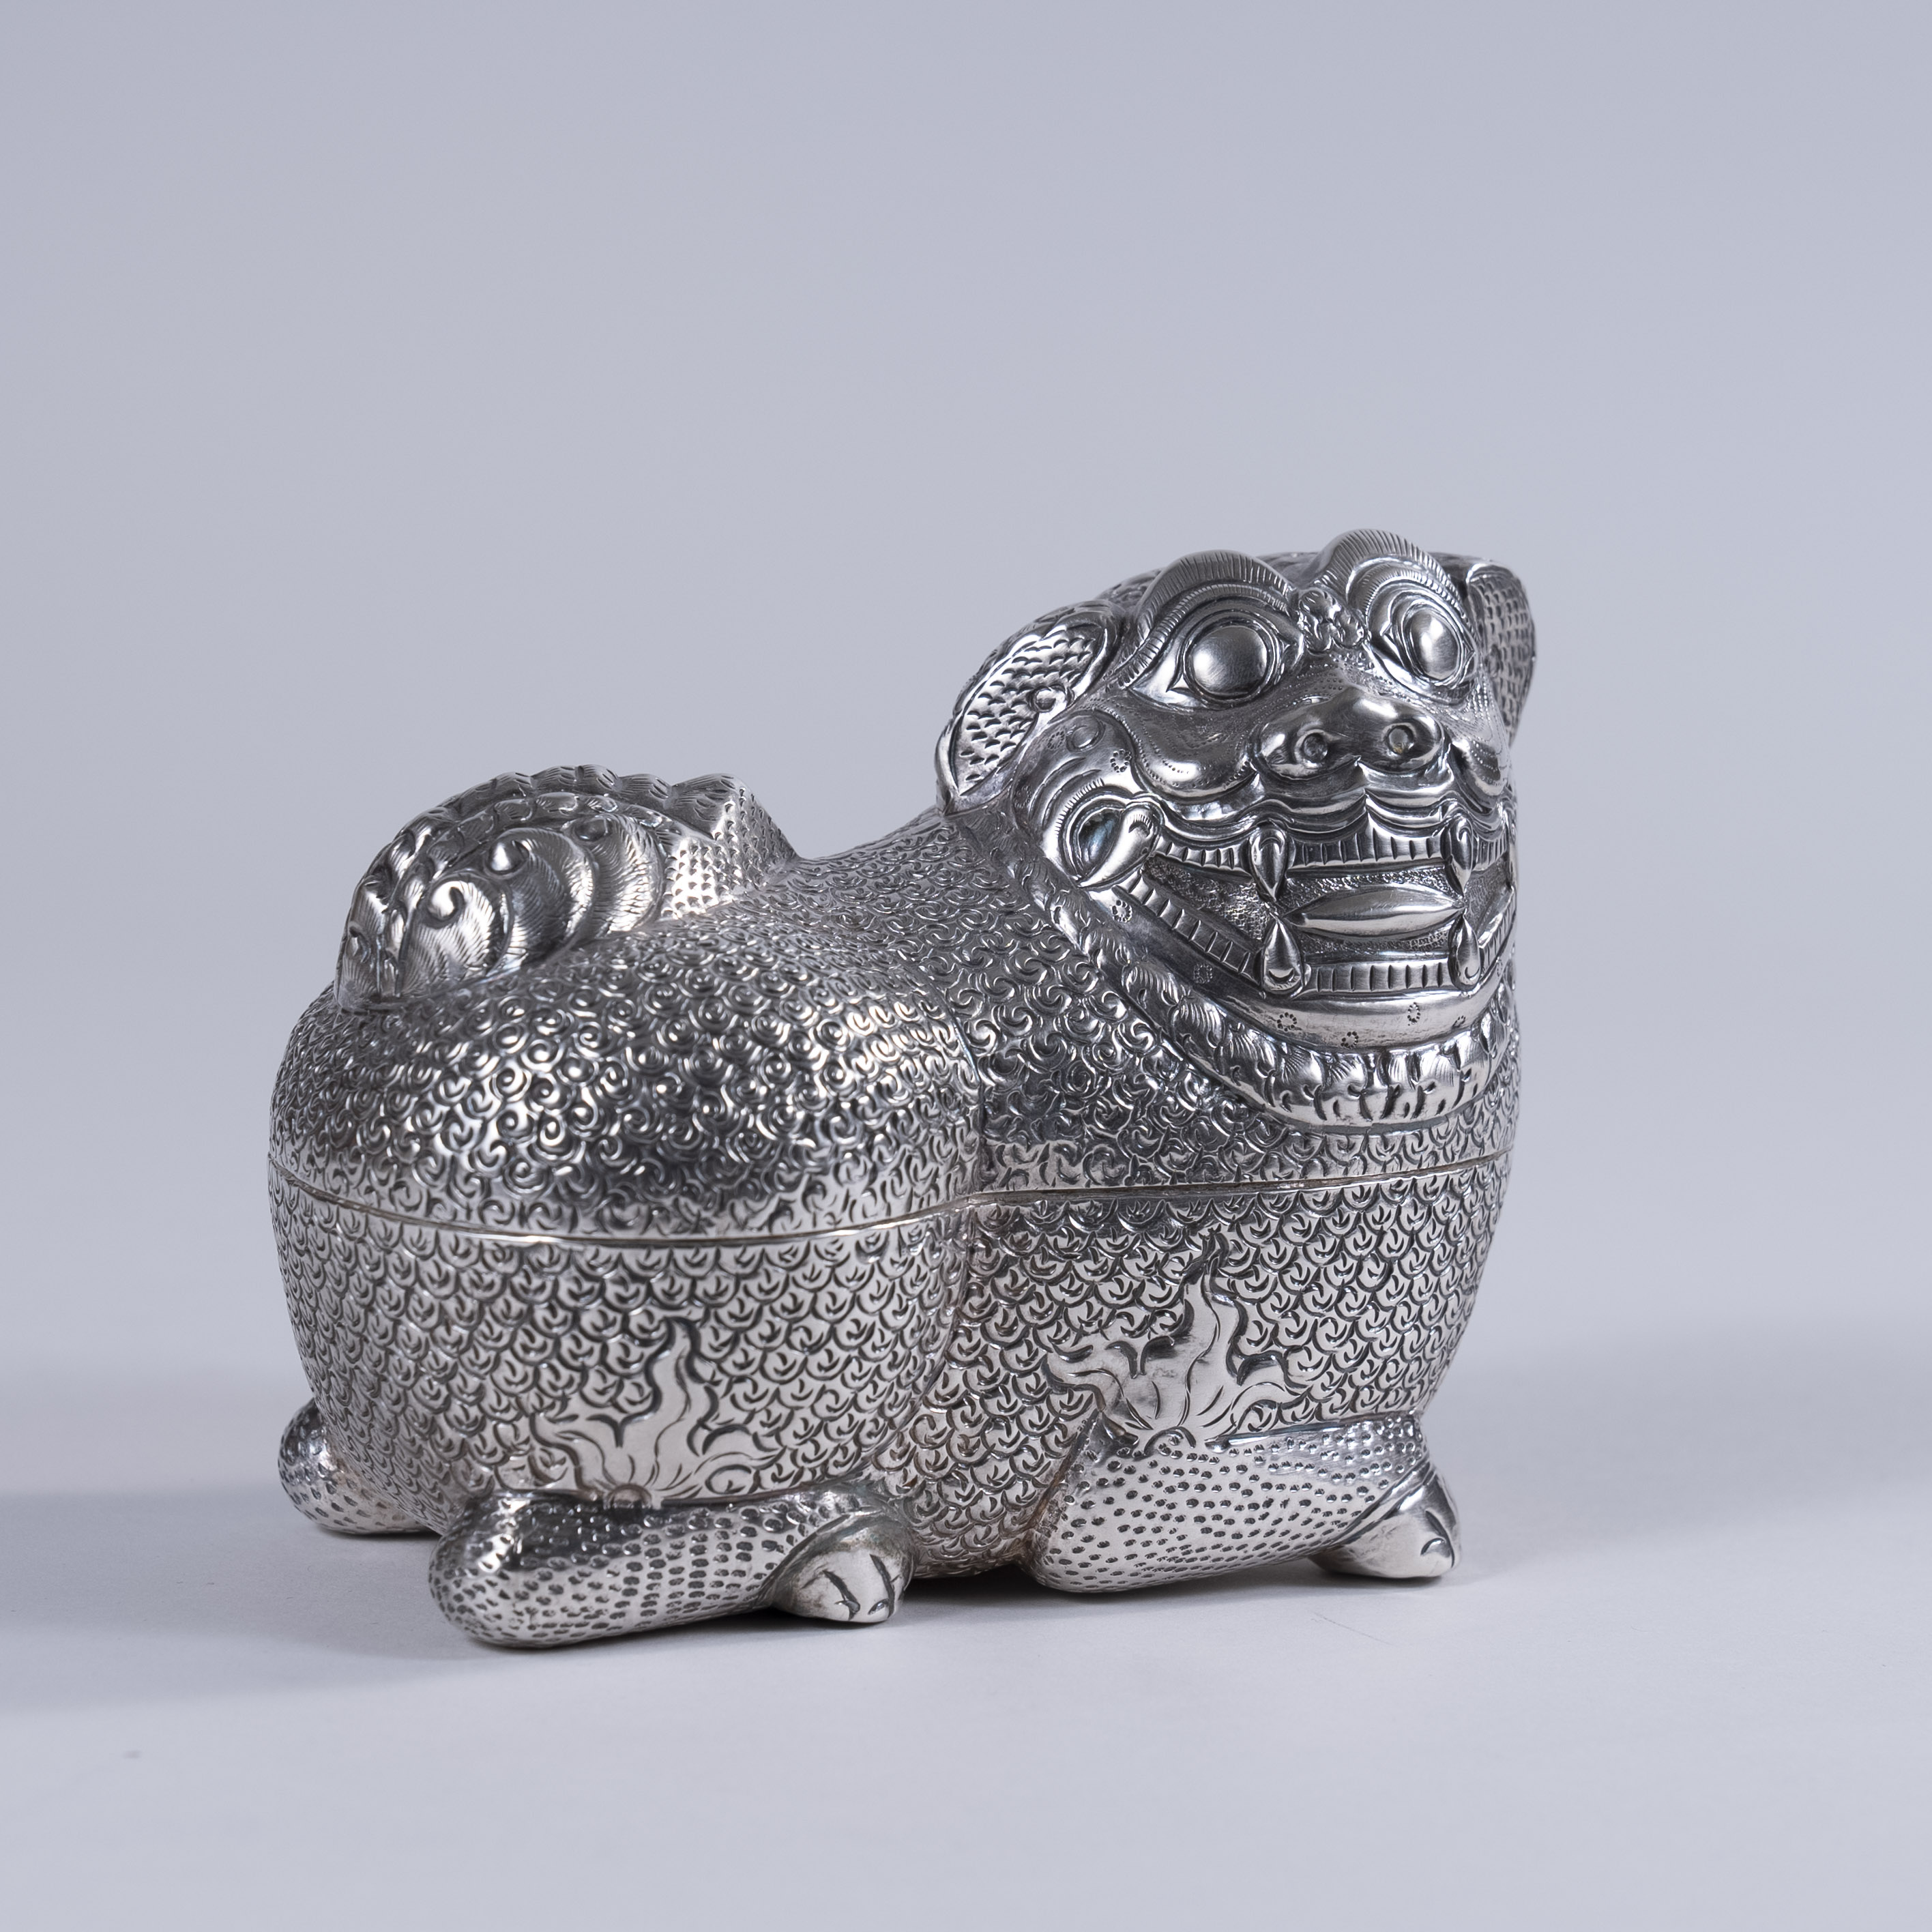 Extremely fine Cambodian repousse silver snuff box, circa 1880